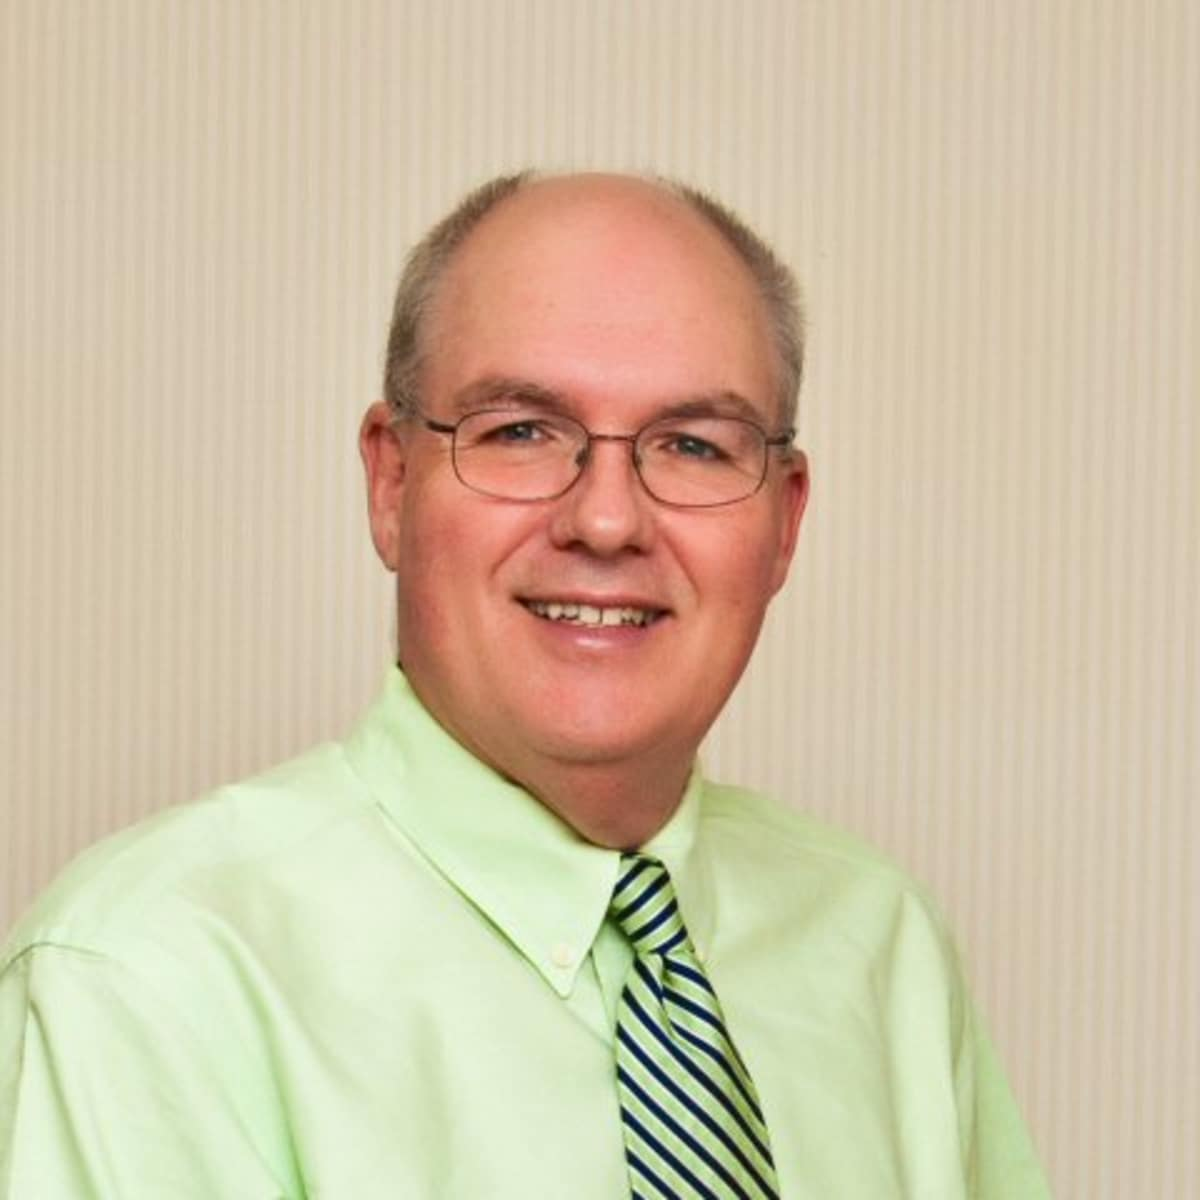 dr jr Jr graham dds usa info@jrgrahamdds  dr jr graham has been a family dentist in marietta, ga for over 19 years he graduated from the university of florida and is .